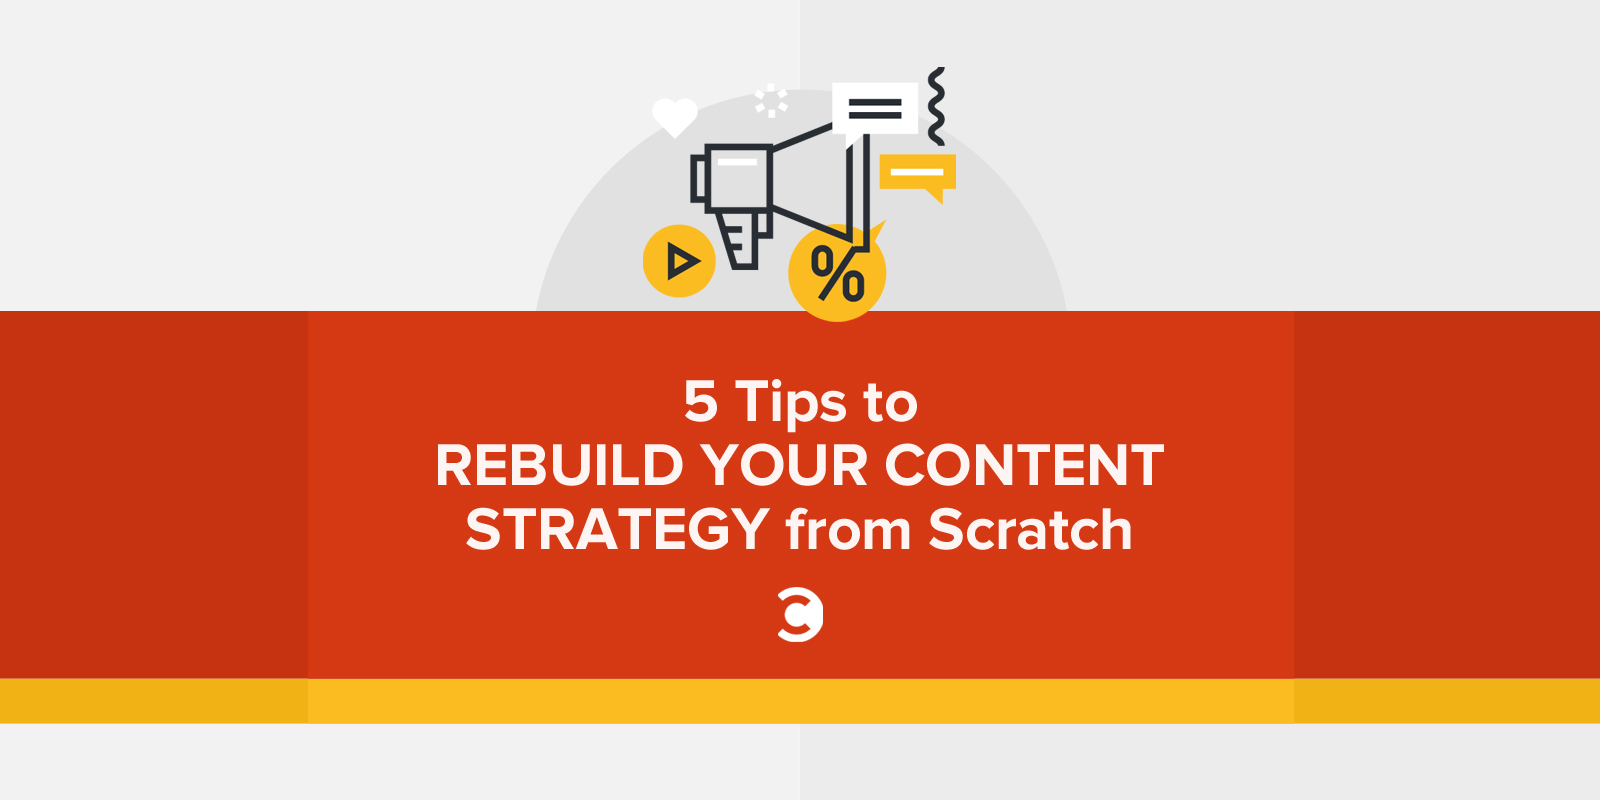 5 Tips to Rebuild Your Content Strategy from Scratch